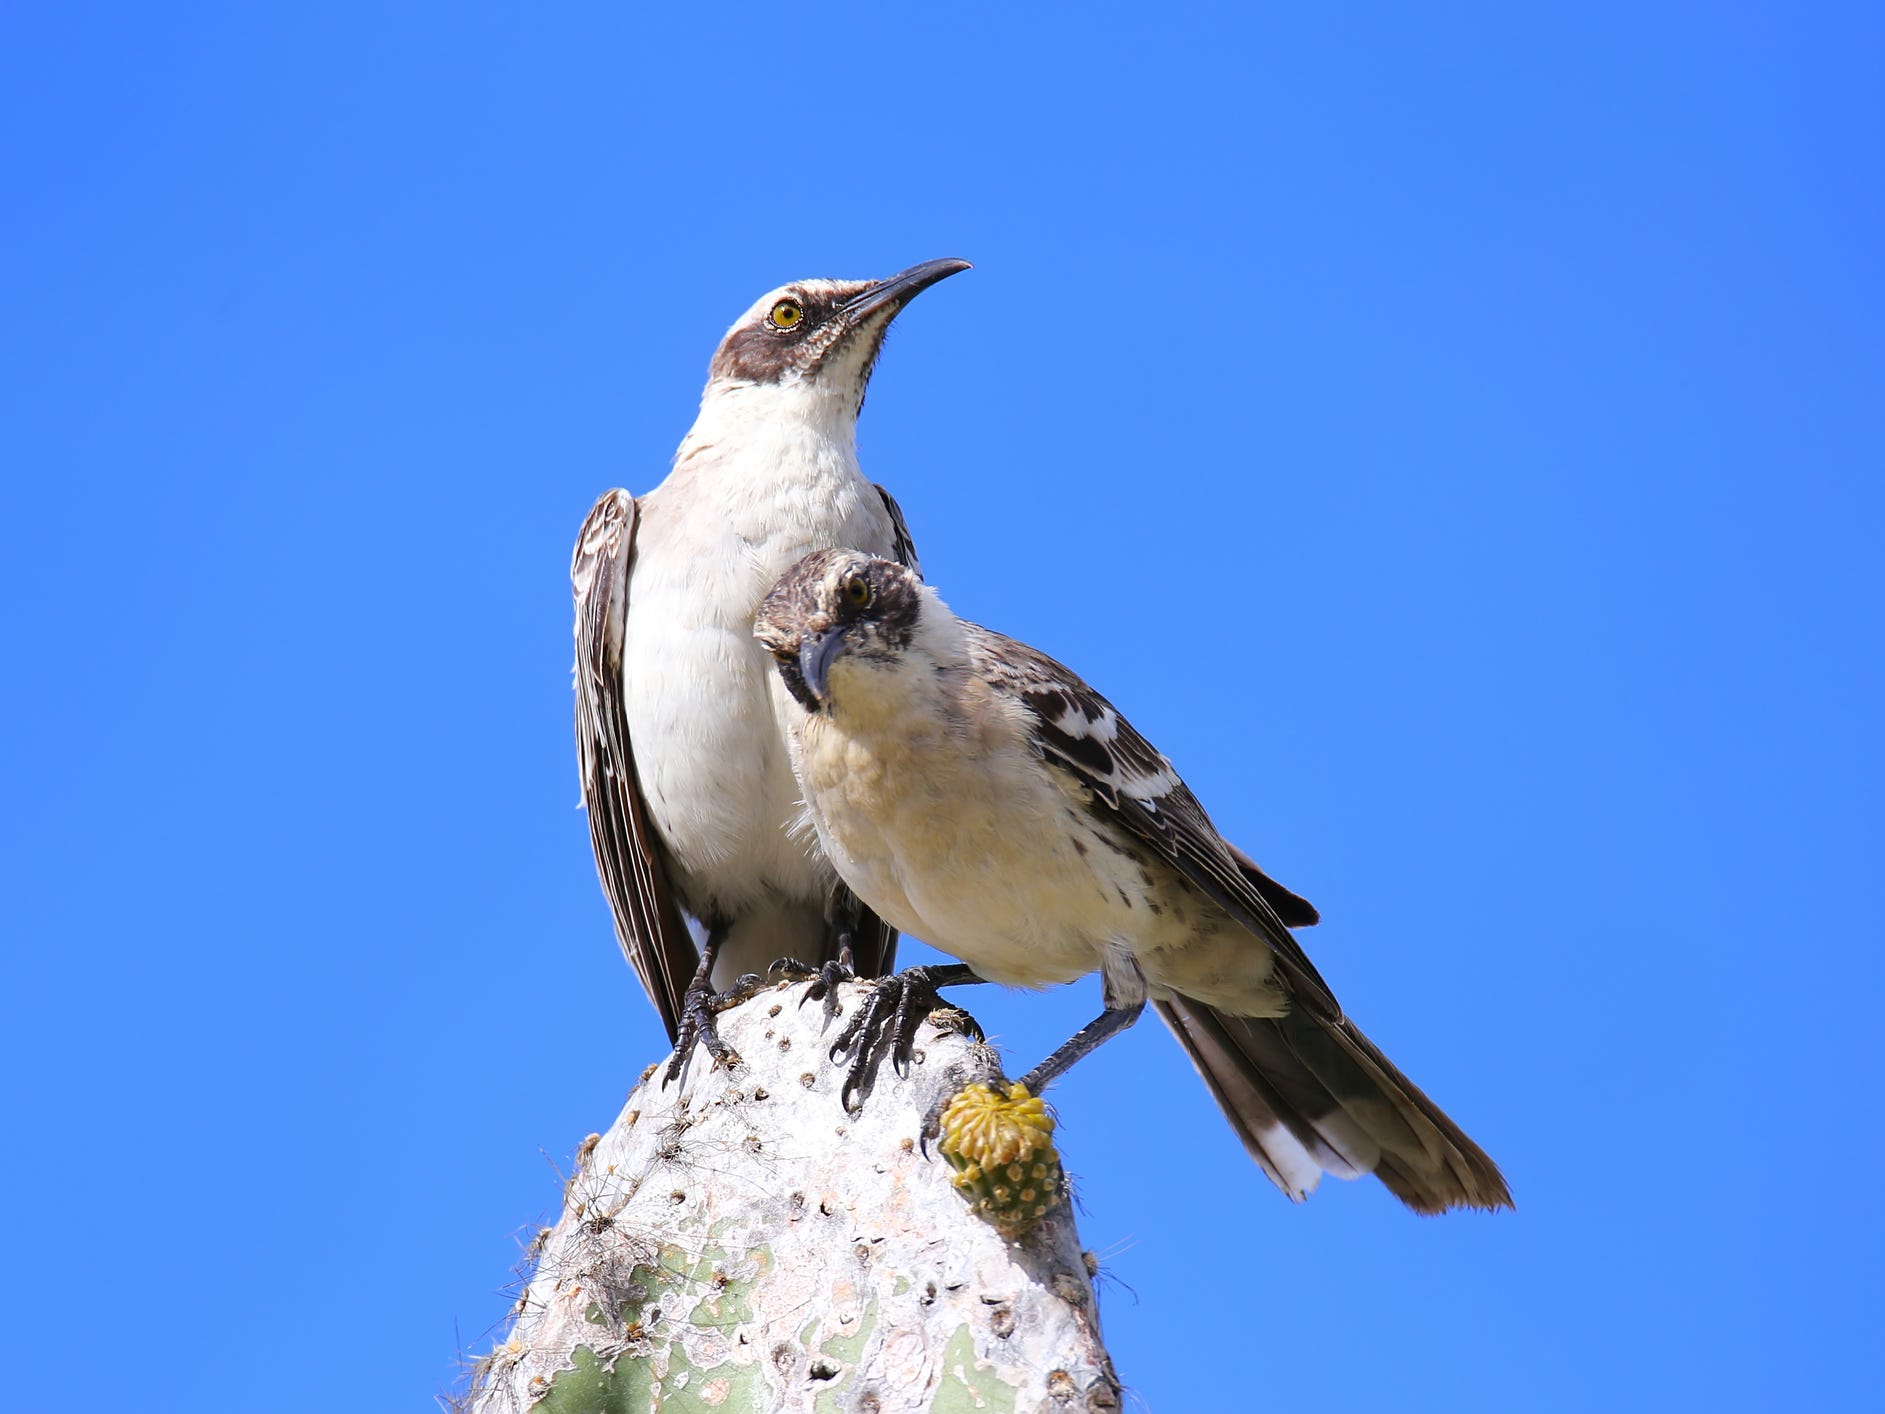 Mockingbirds in the Galapagos Islands, Ecuador.